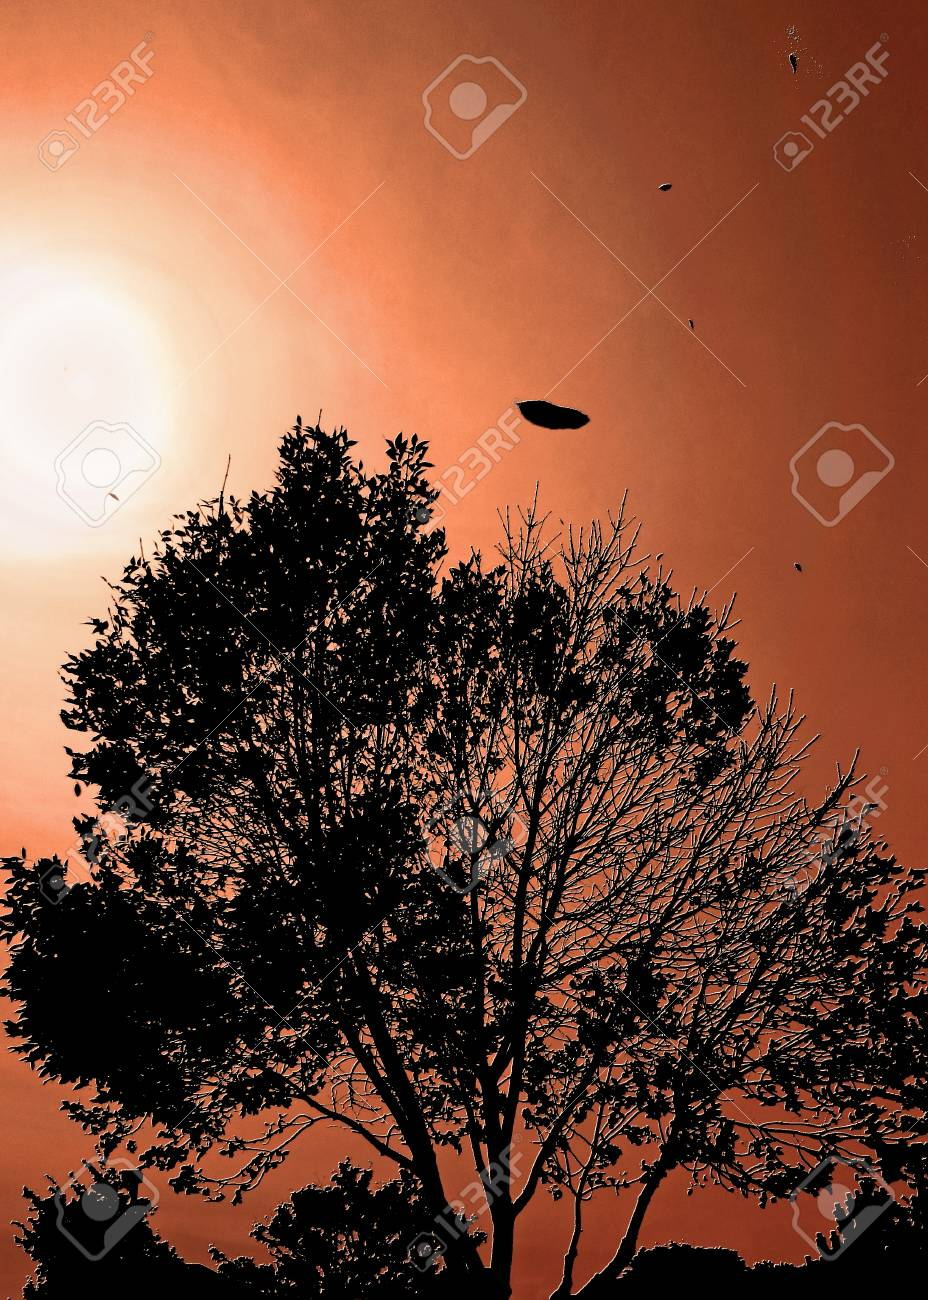 Tree with falling leaves against a spooky orange sky Stock Photo - 15736856